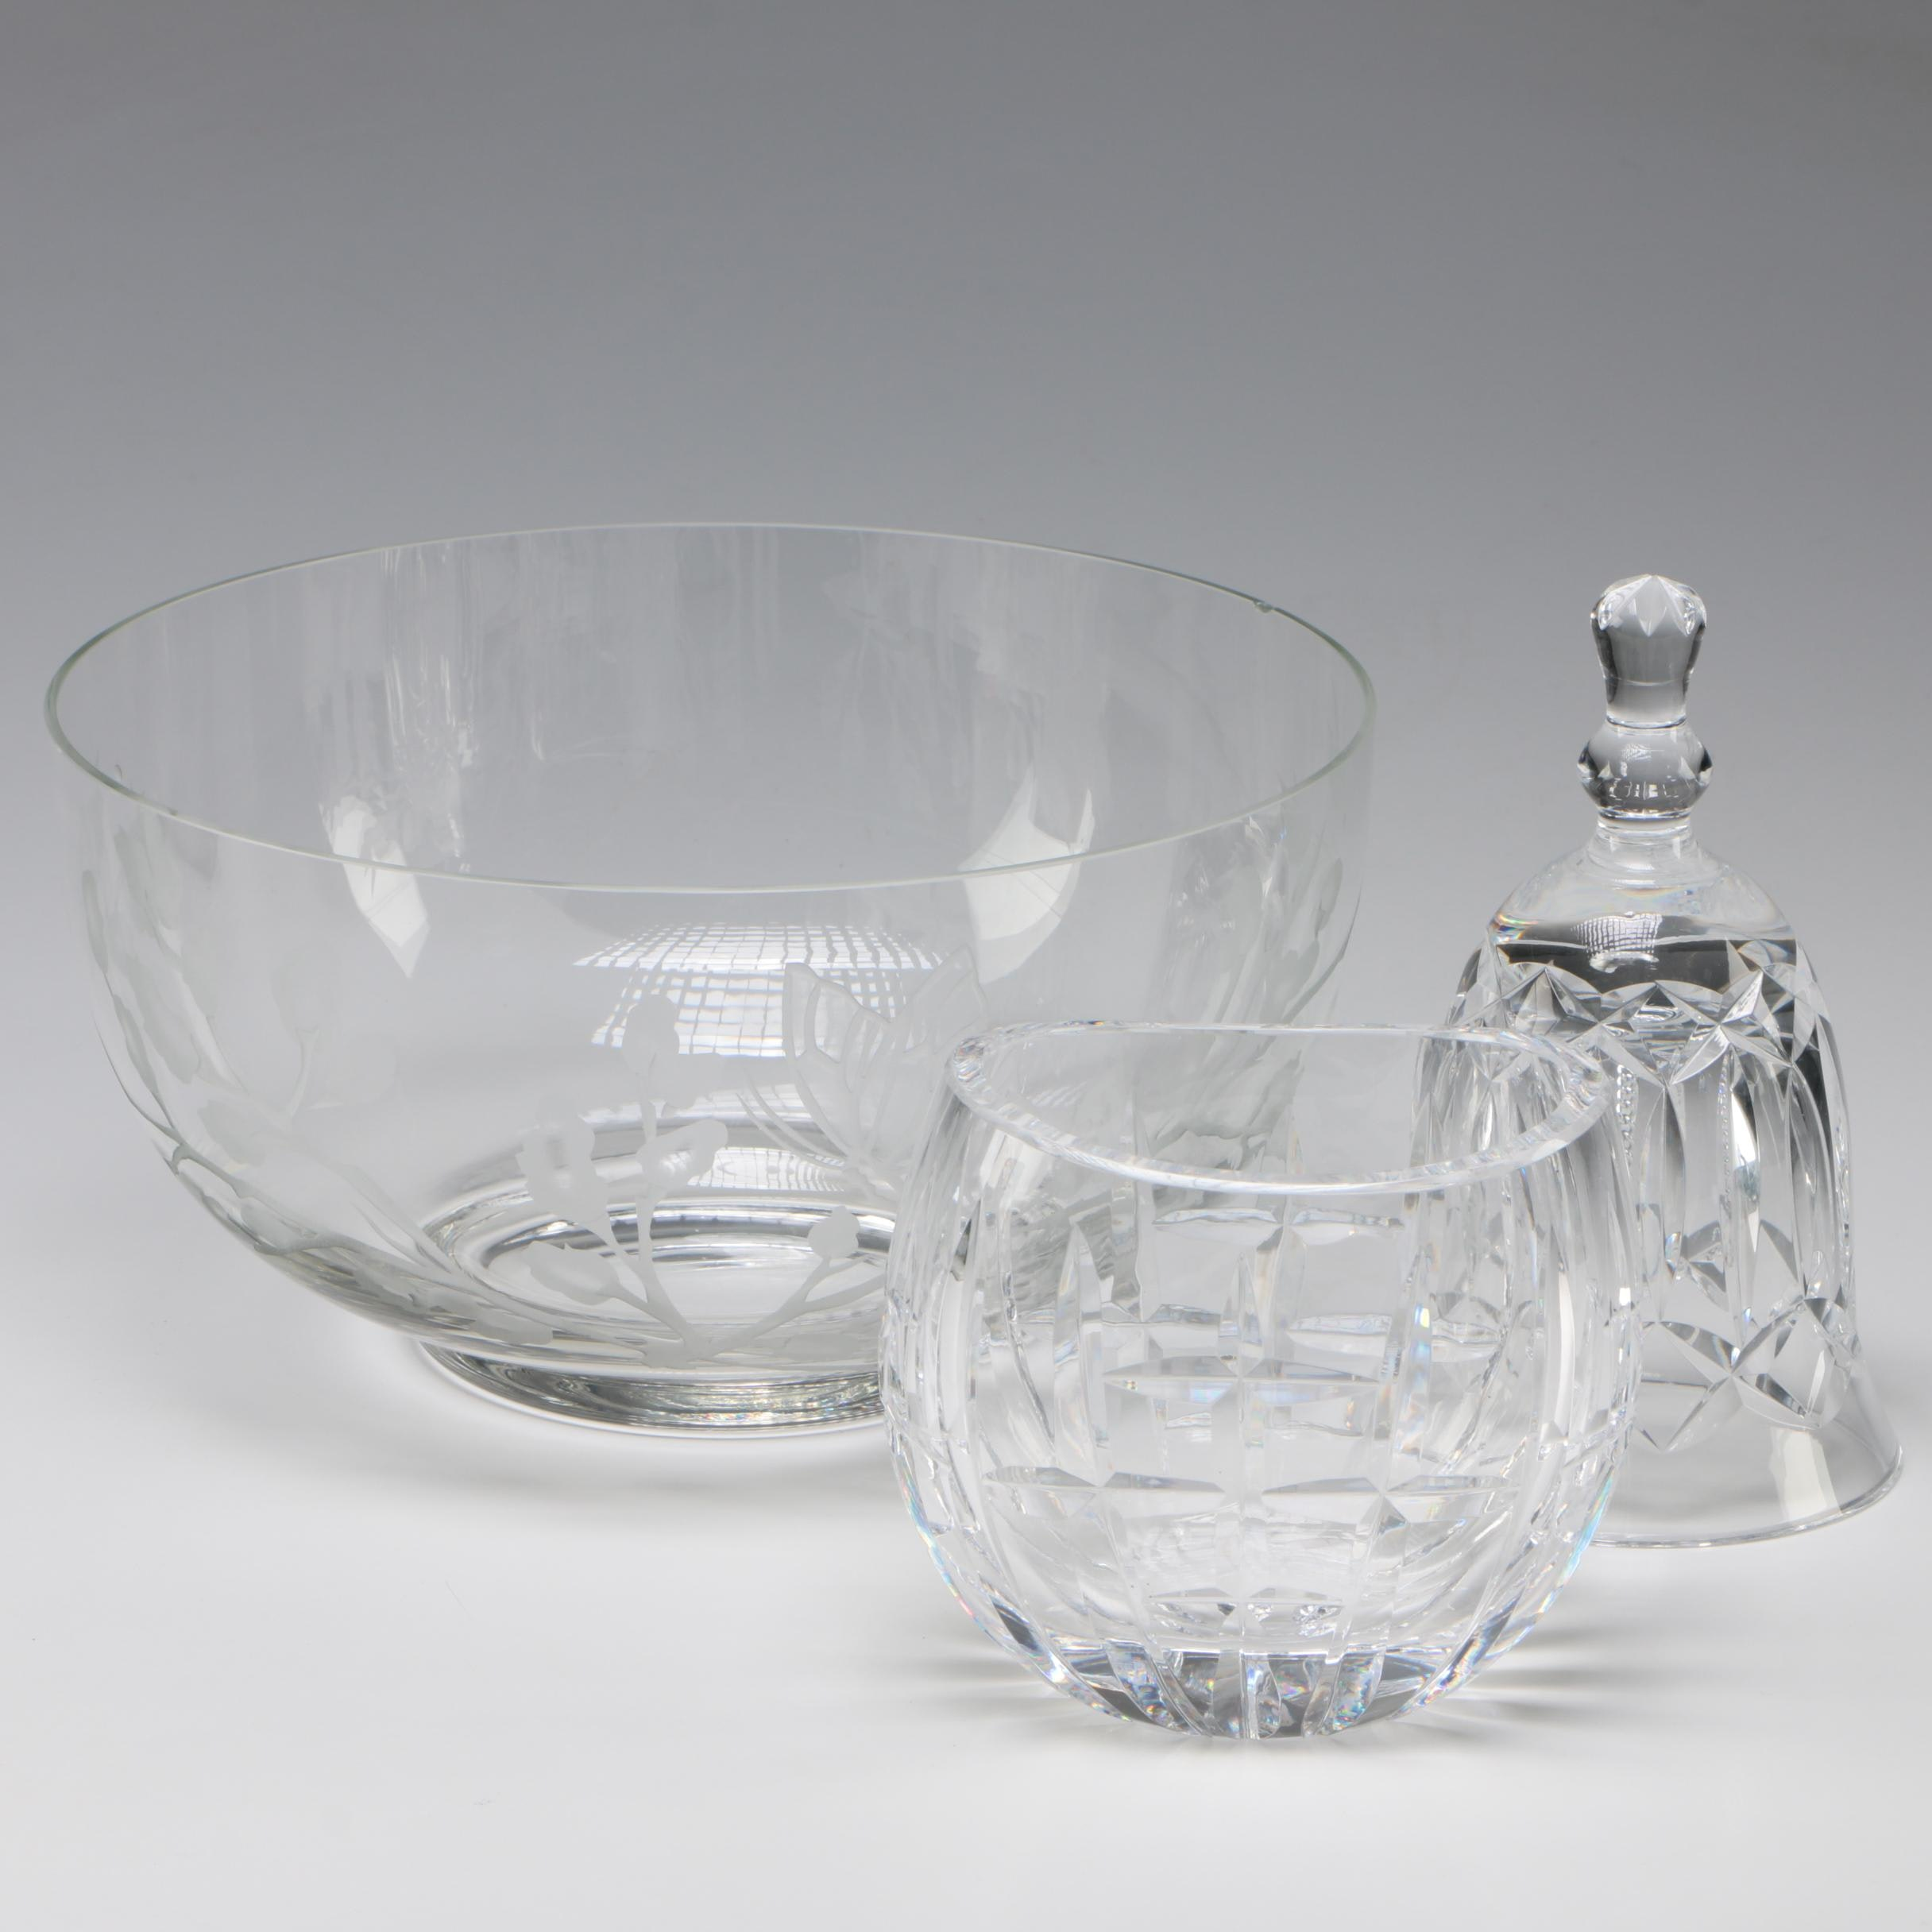 Waterford Crystal Oval Vase with Crystal Bell and Etched Glass Serving Bowl